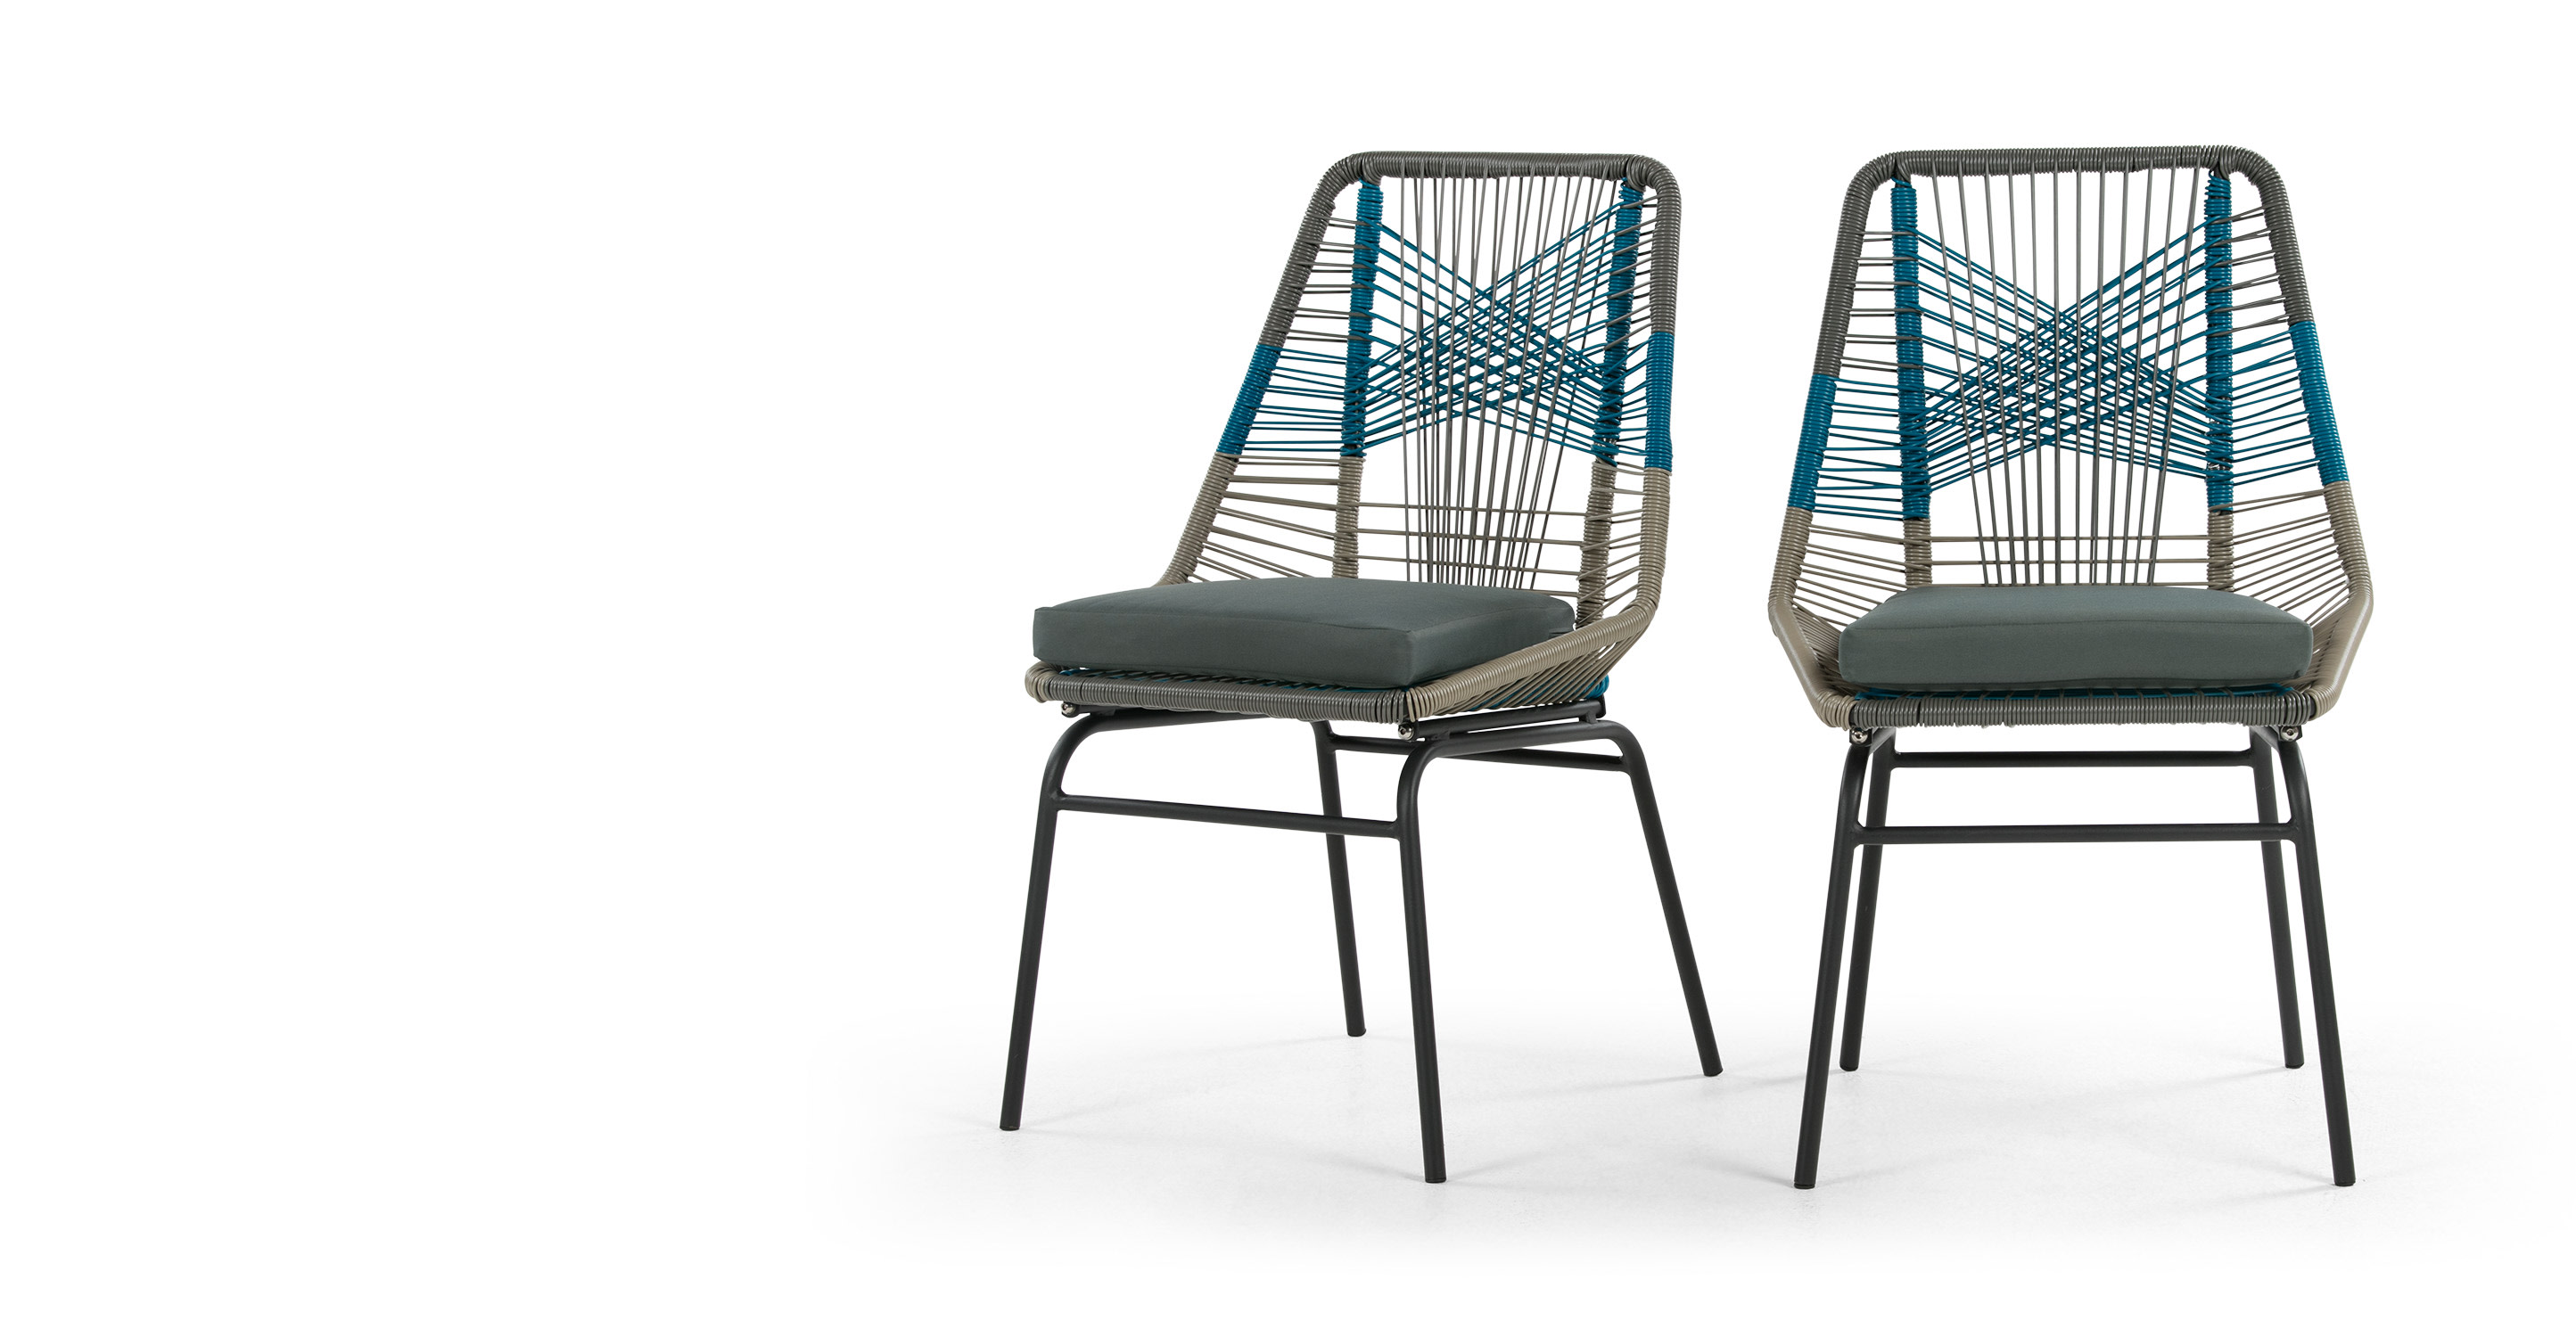 Of outdoor dining chairs in cool blue by made studio